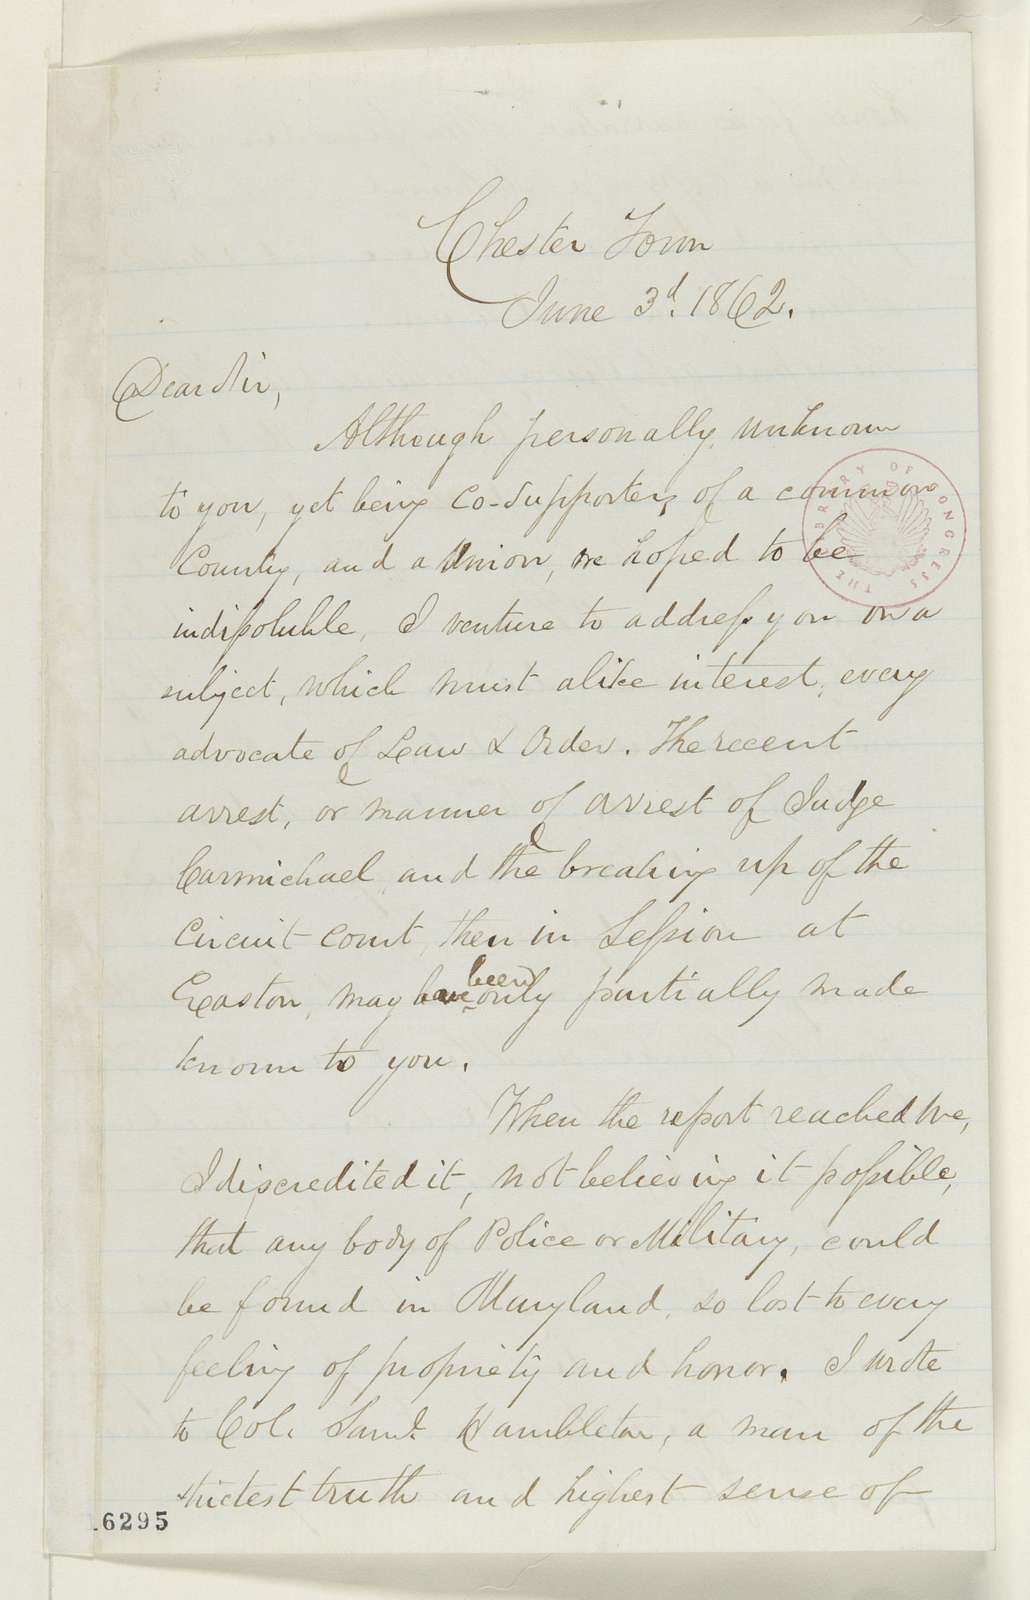 Abraham Lincoln papers: Series 1. General Correspondence. 1833-1916: George Vickers to William Price, Tuesday, June 03, 1862 (Arrests in Maryland)